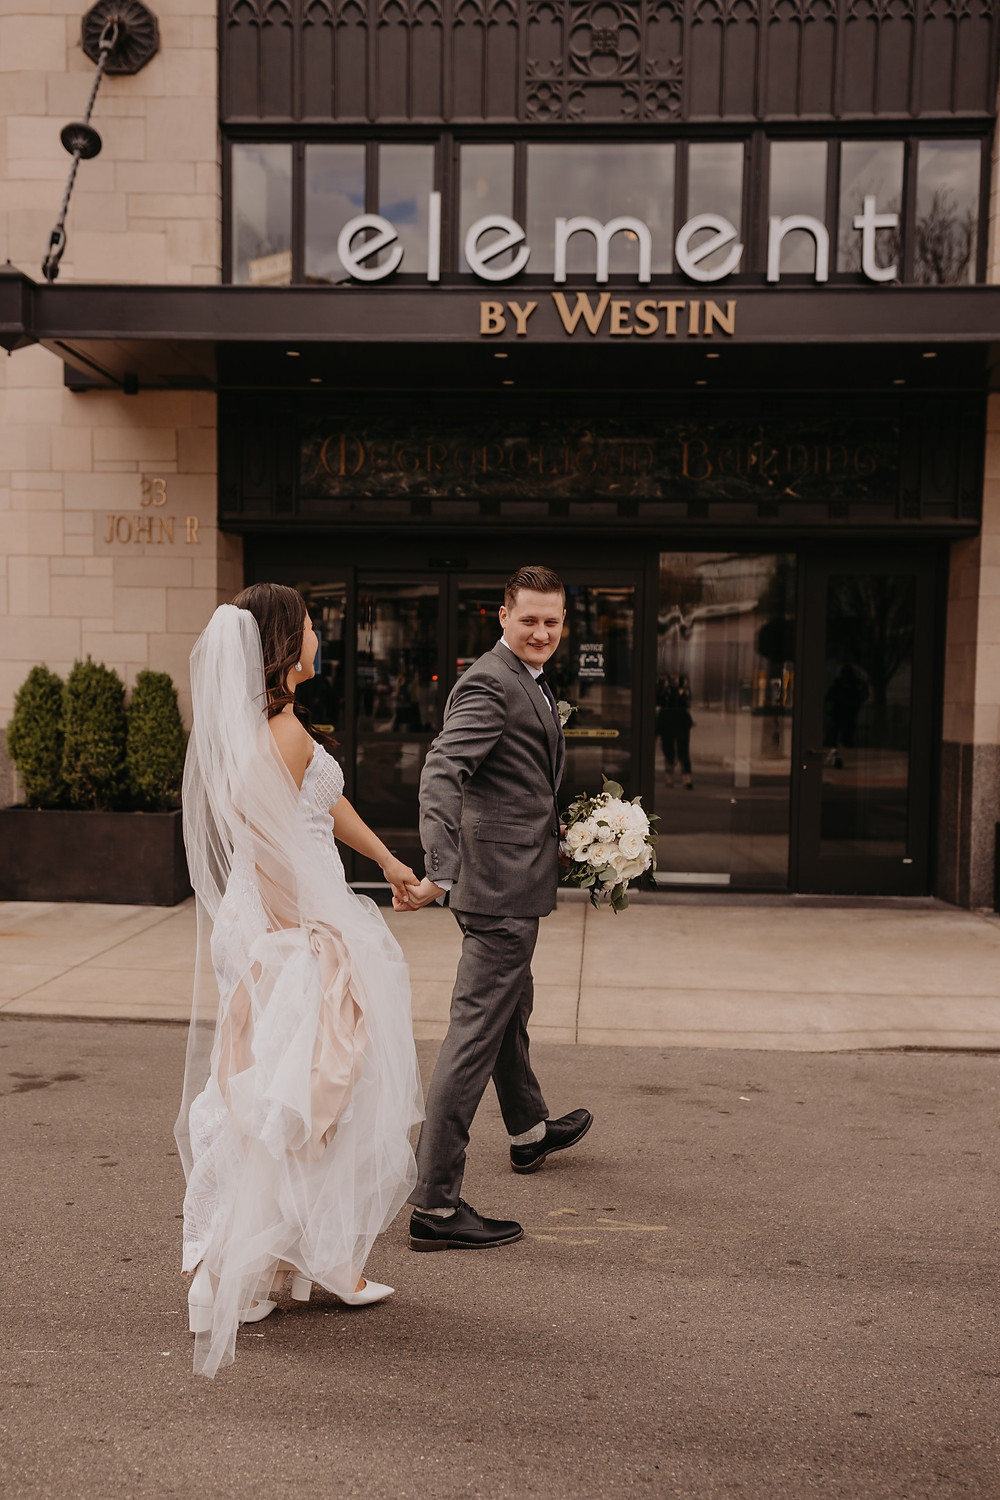 Wedding at Element Detroit by Westin in Downtown Detroit. Photographed by Nicole Leanne Photography.